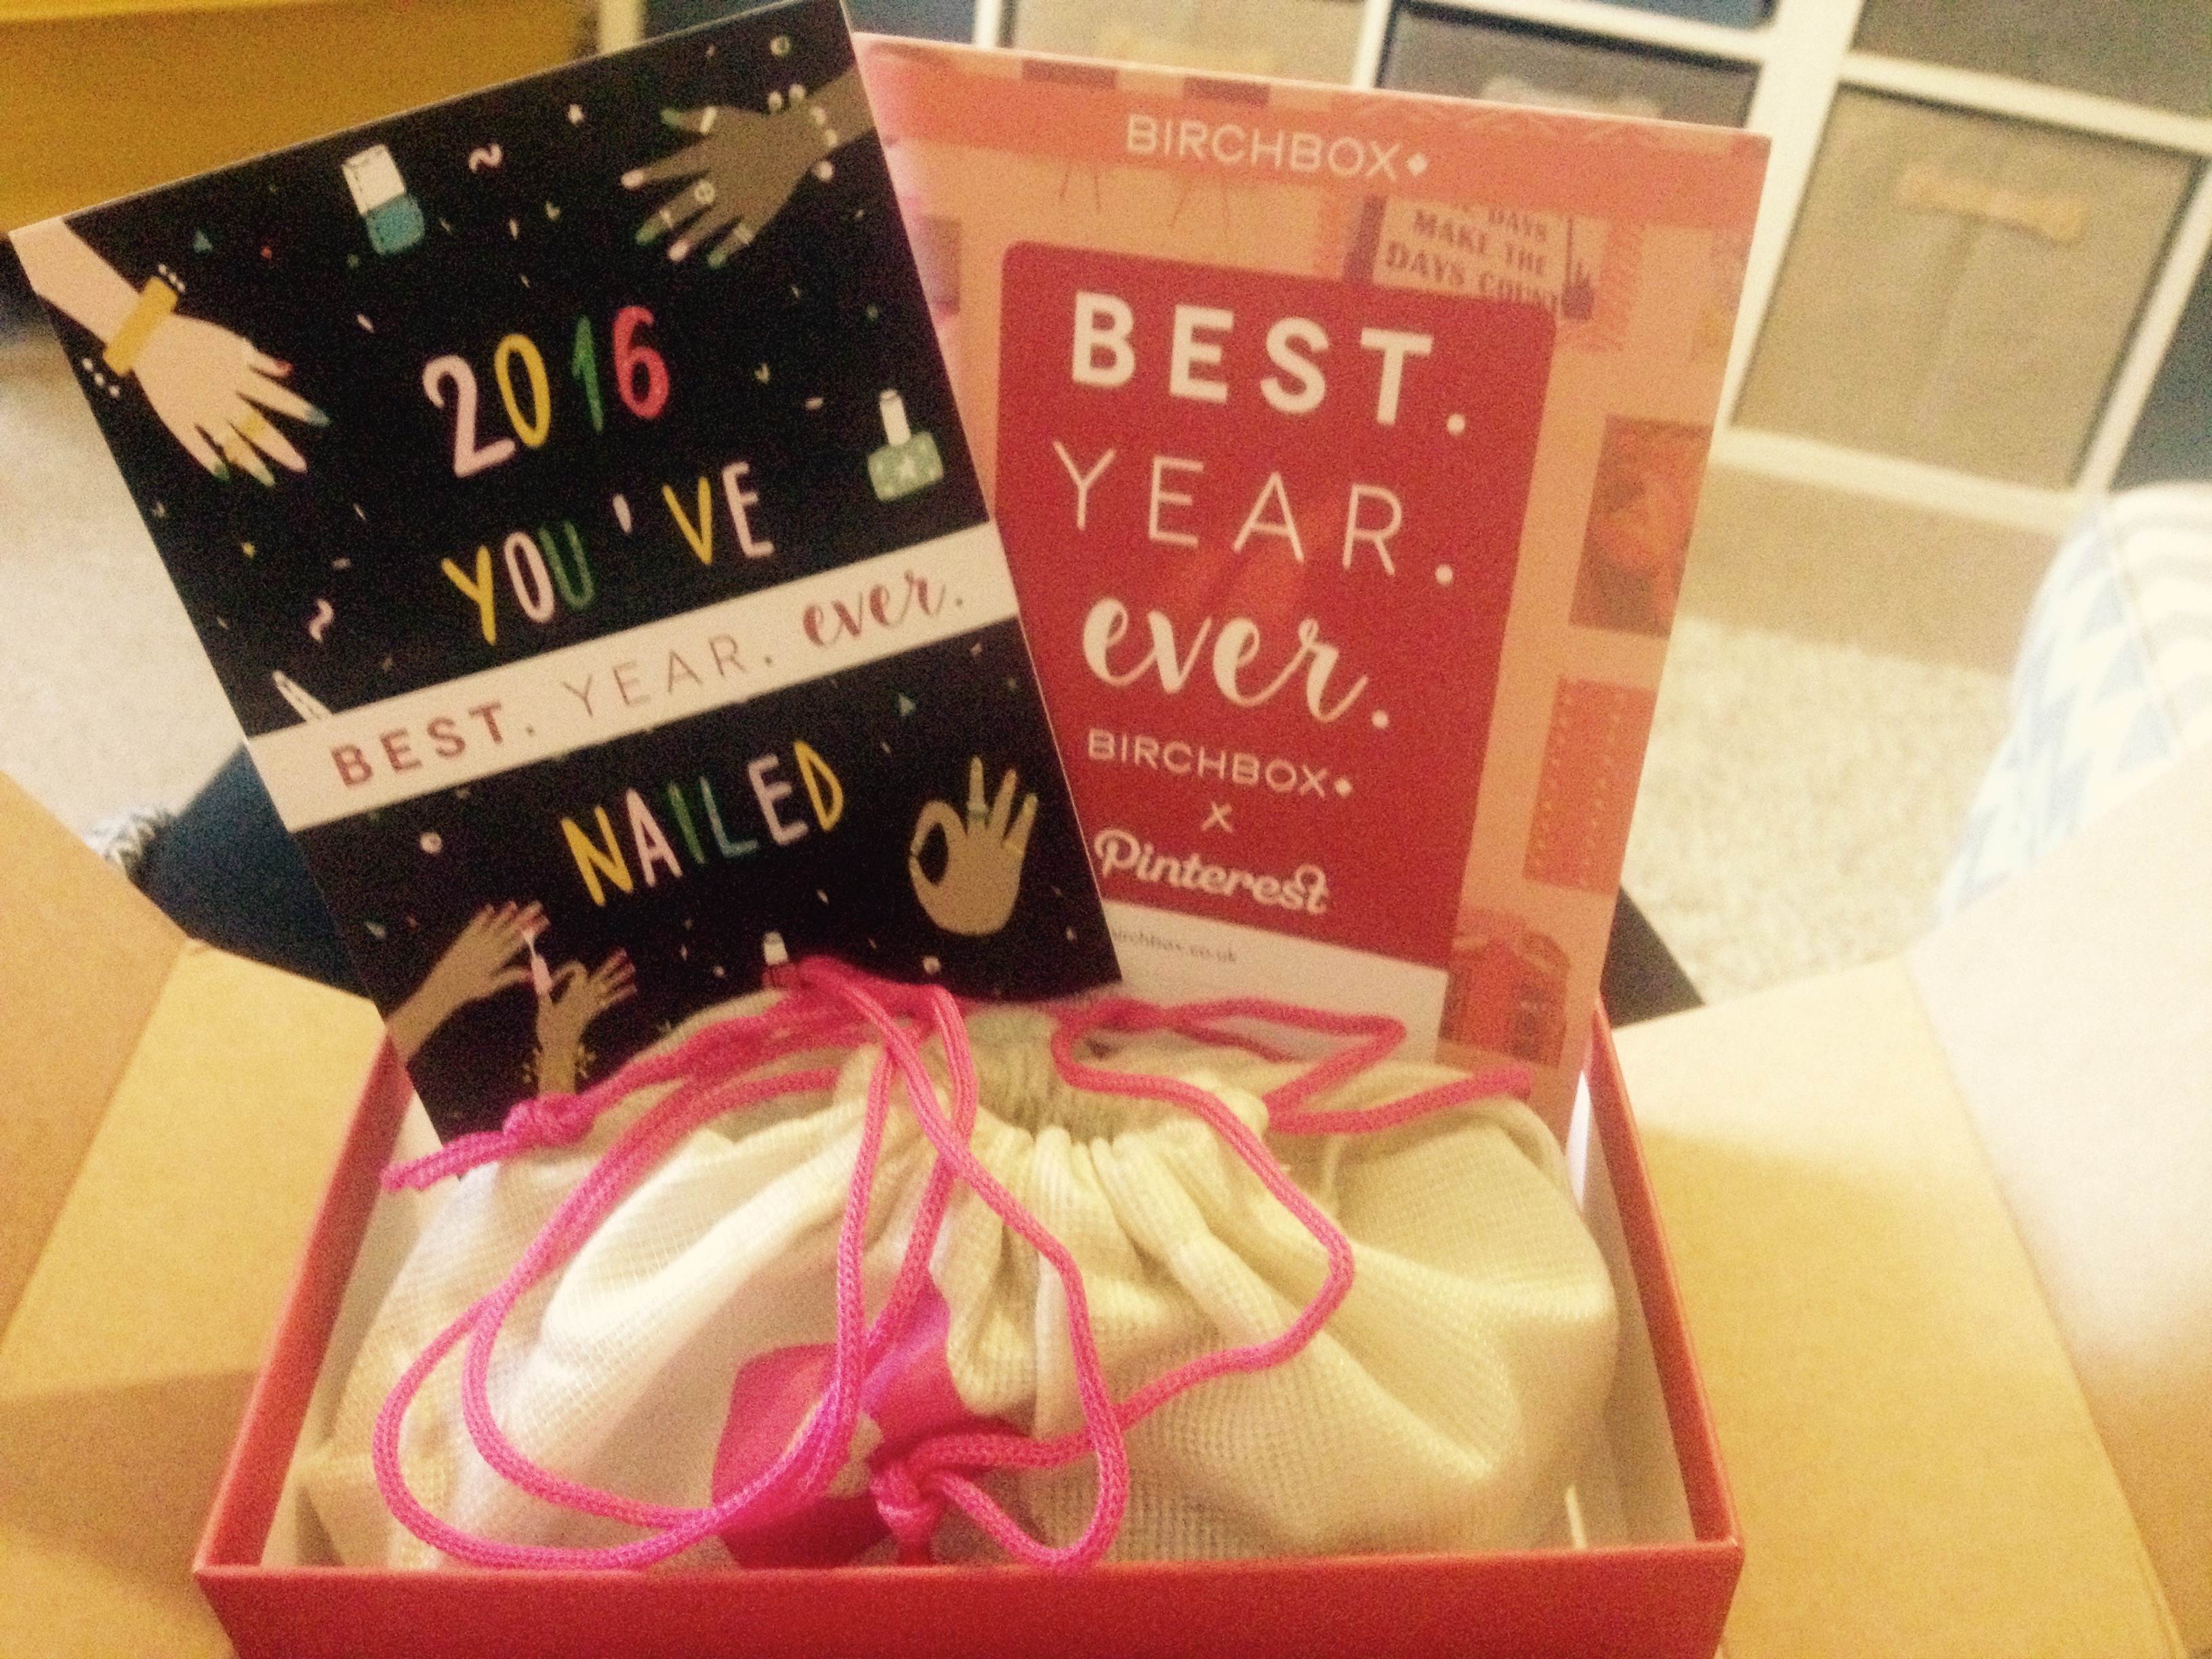 Birchbox beauty subscription with Pinterest for January 2016 best year ever with postcards